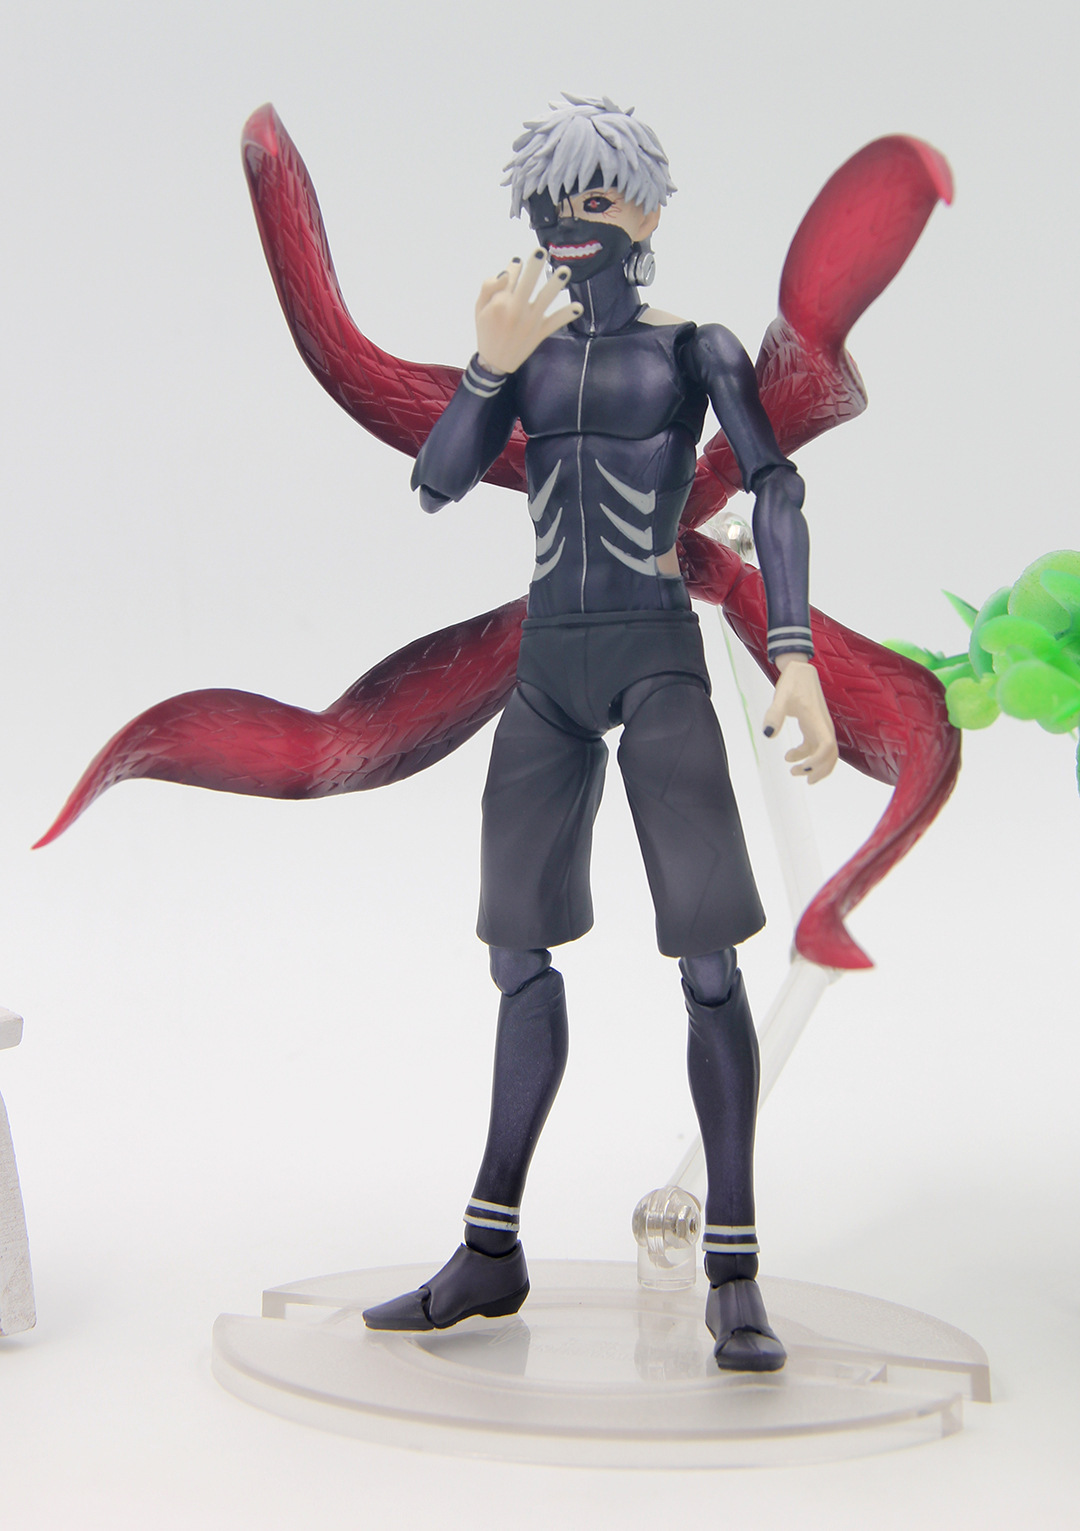 Anime Tokyo Ghoul Ken Kaneki Awakening Ver. Joints Move Action Figure Collectible Model Toy 16cm